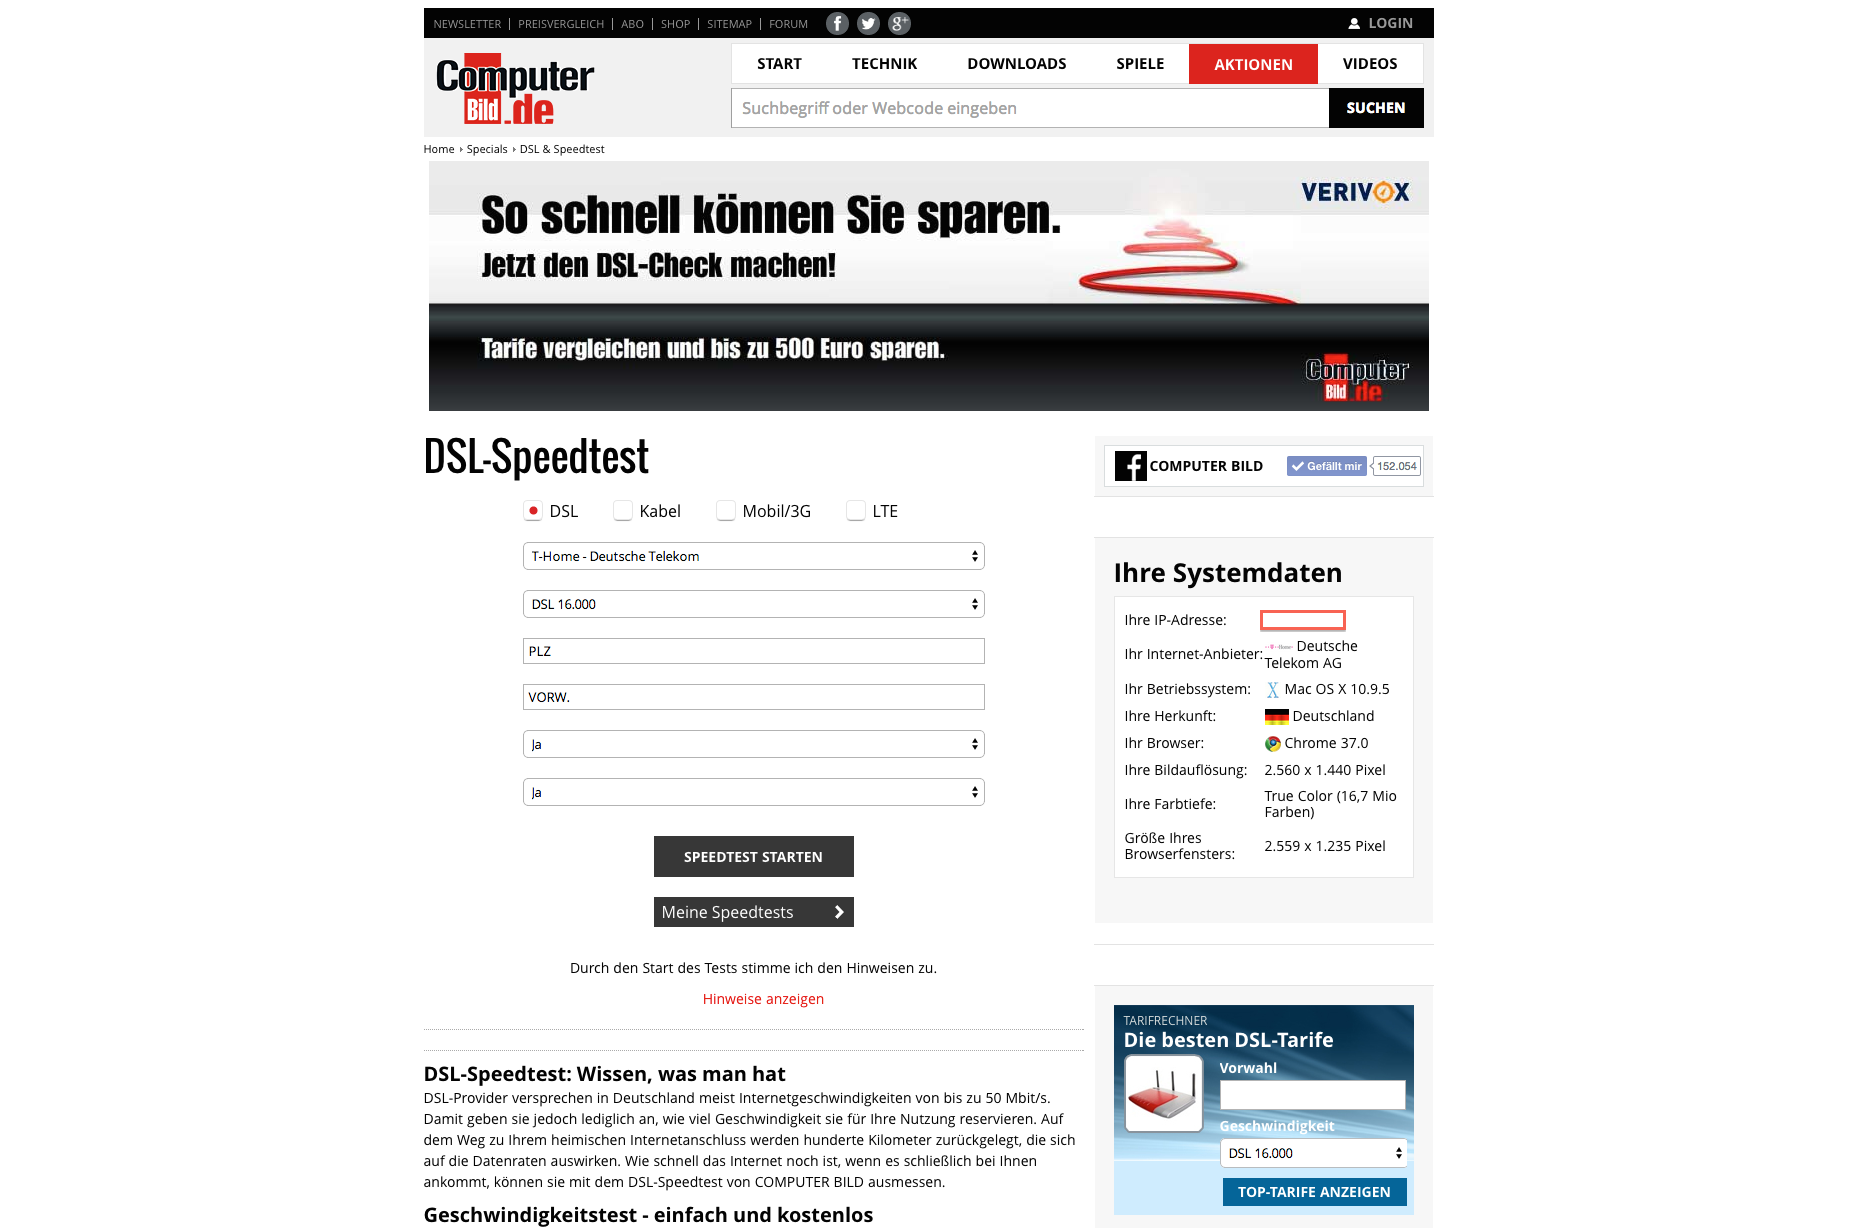 dsl speedtest anleitung mit video. Black Bedroom Furniture Sets. Home Design Ideas